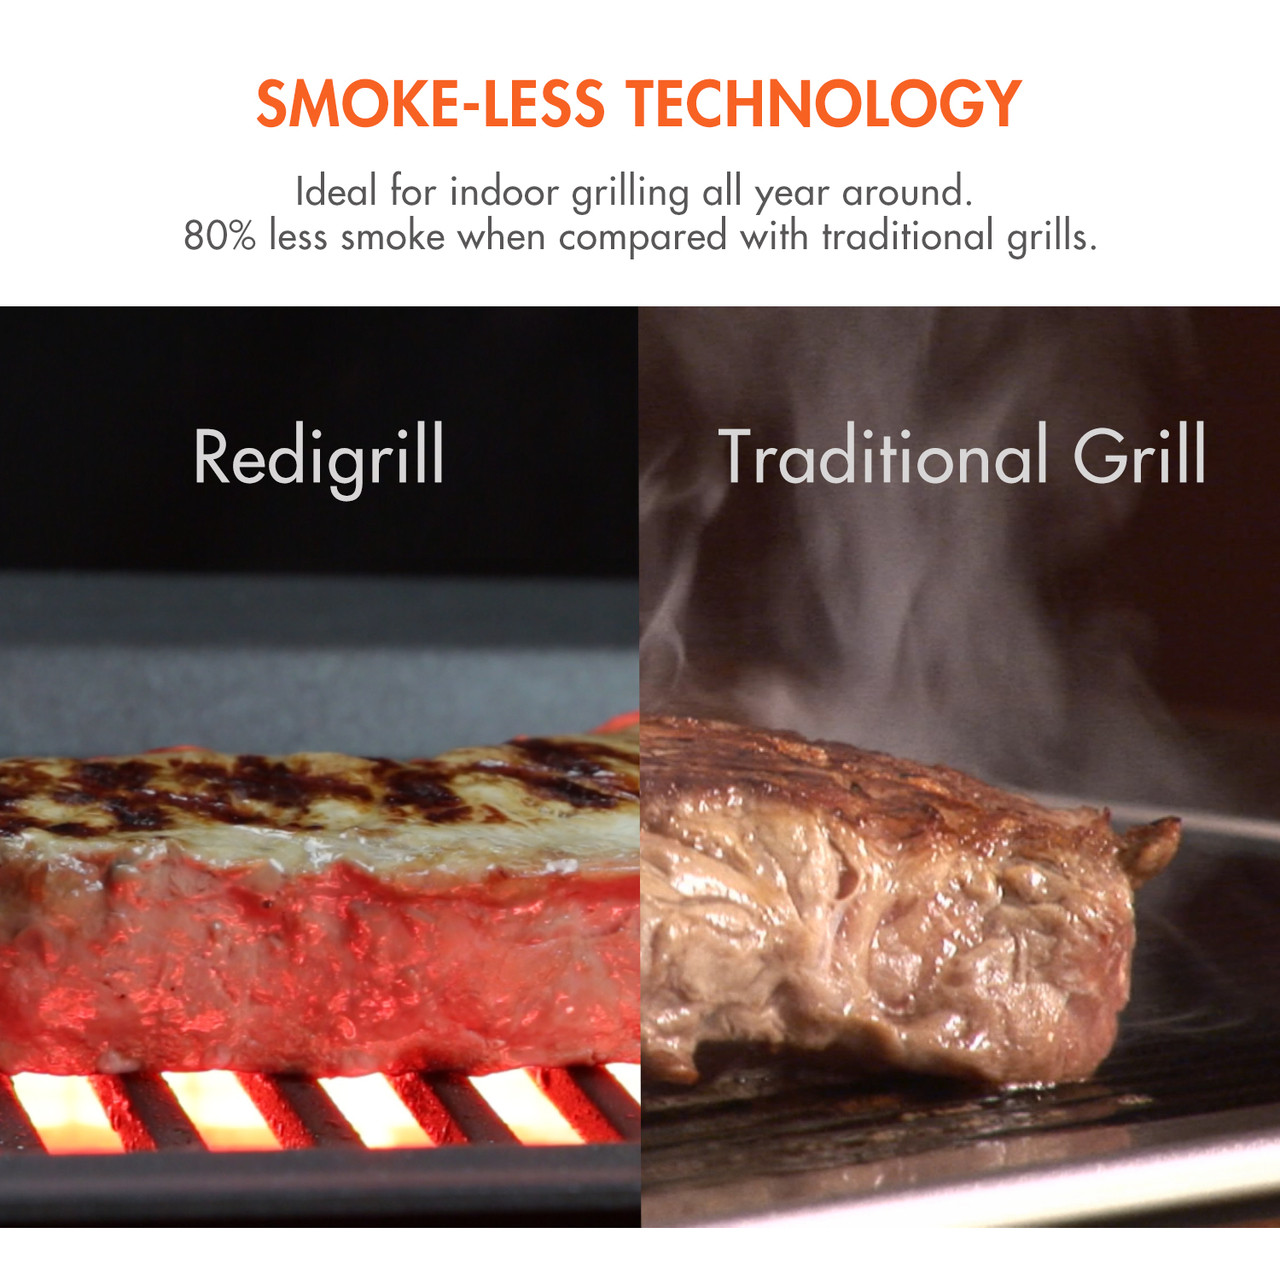 Redigrill Smoke-less Infrared Indoor Grill